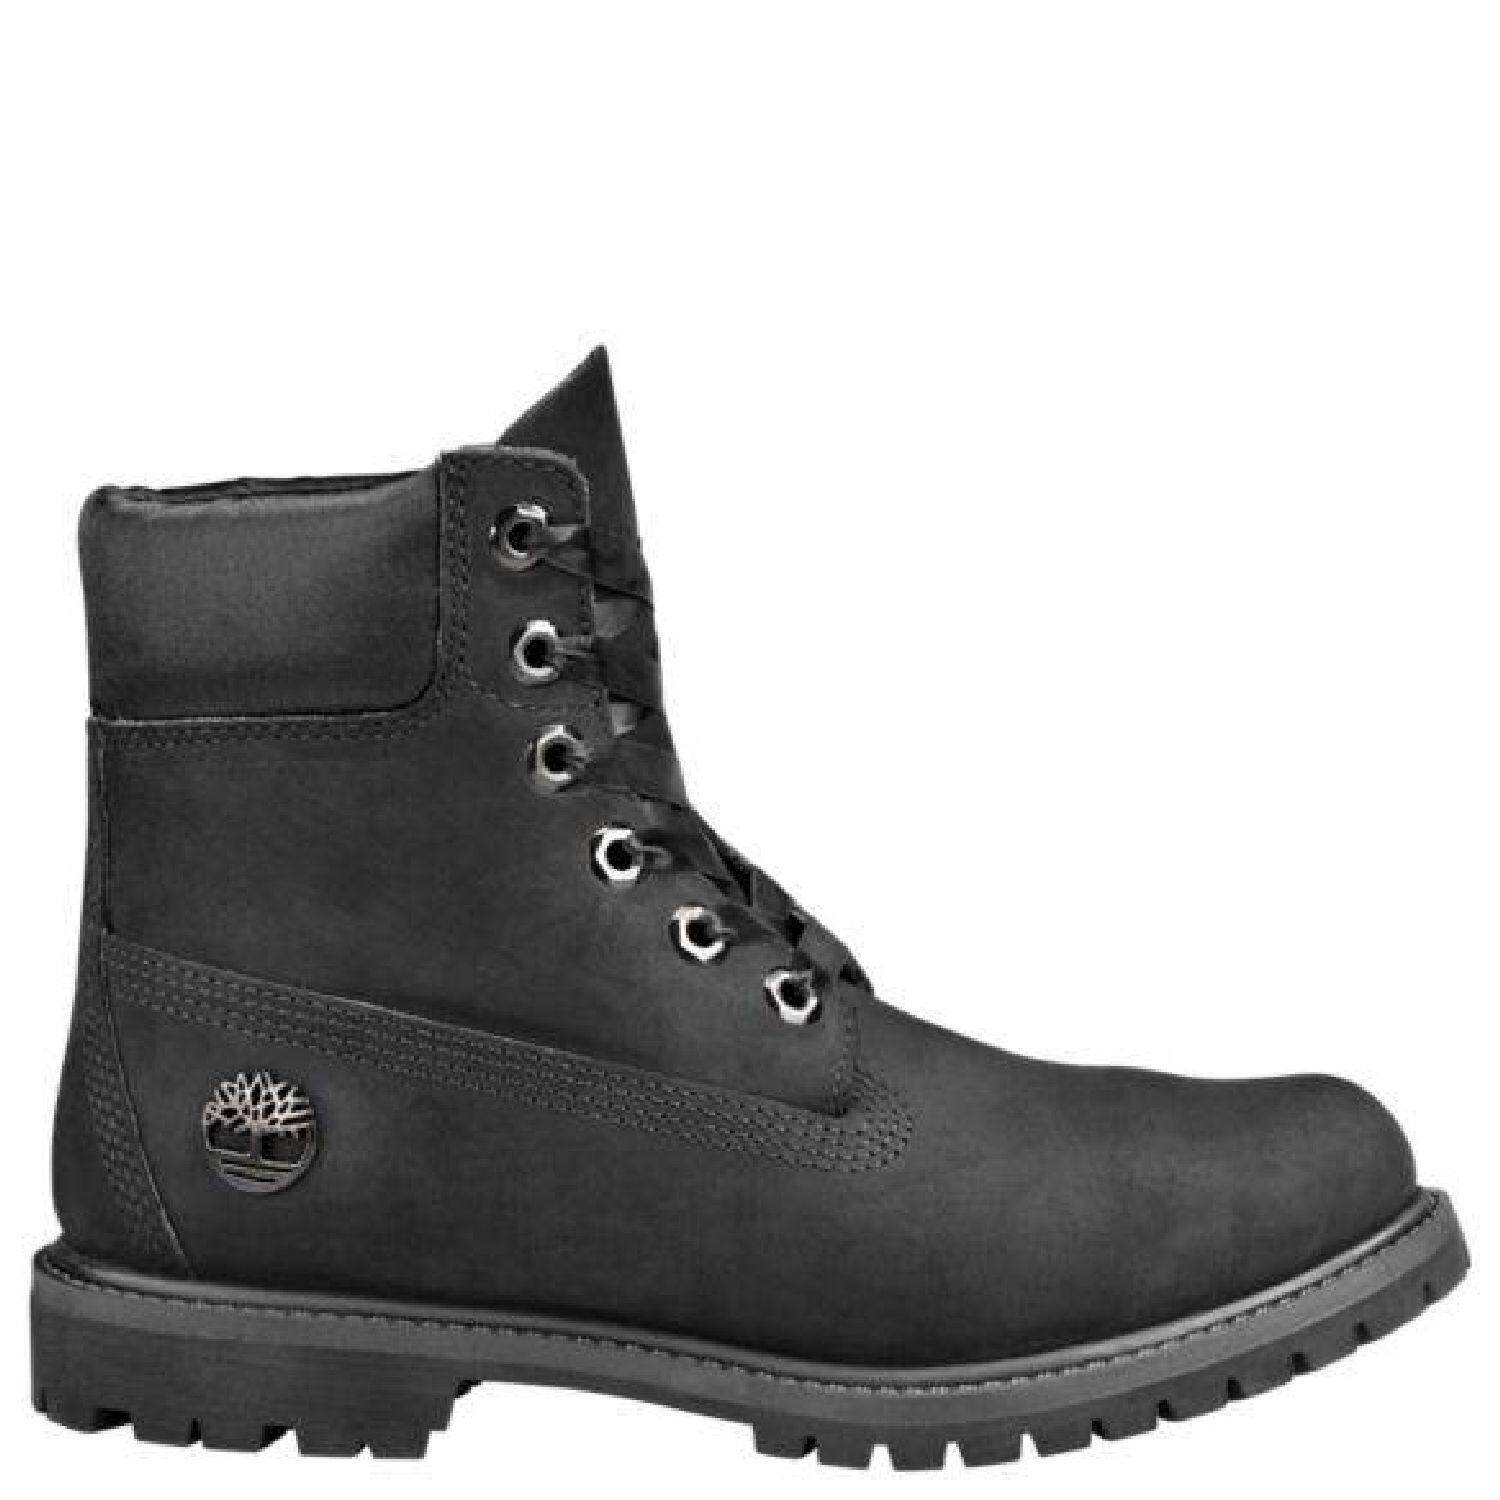 fd86d2f12a285 Timberland Women s Boots price in Malaysia - Best Timberland Women s ...